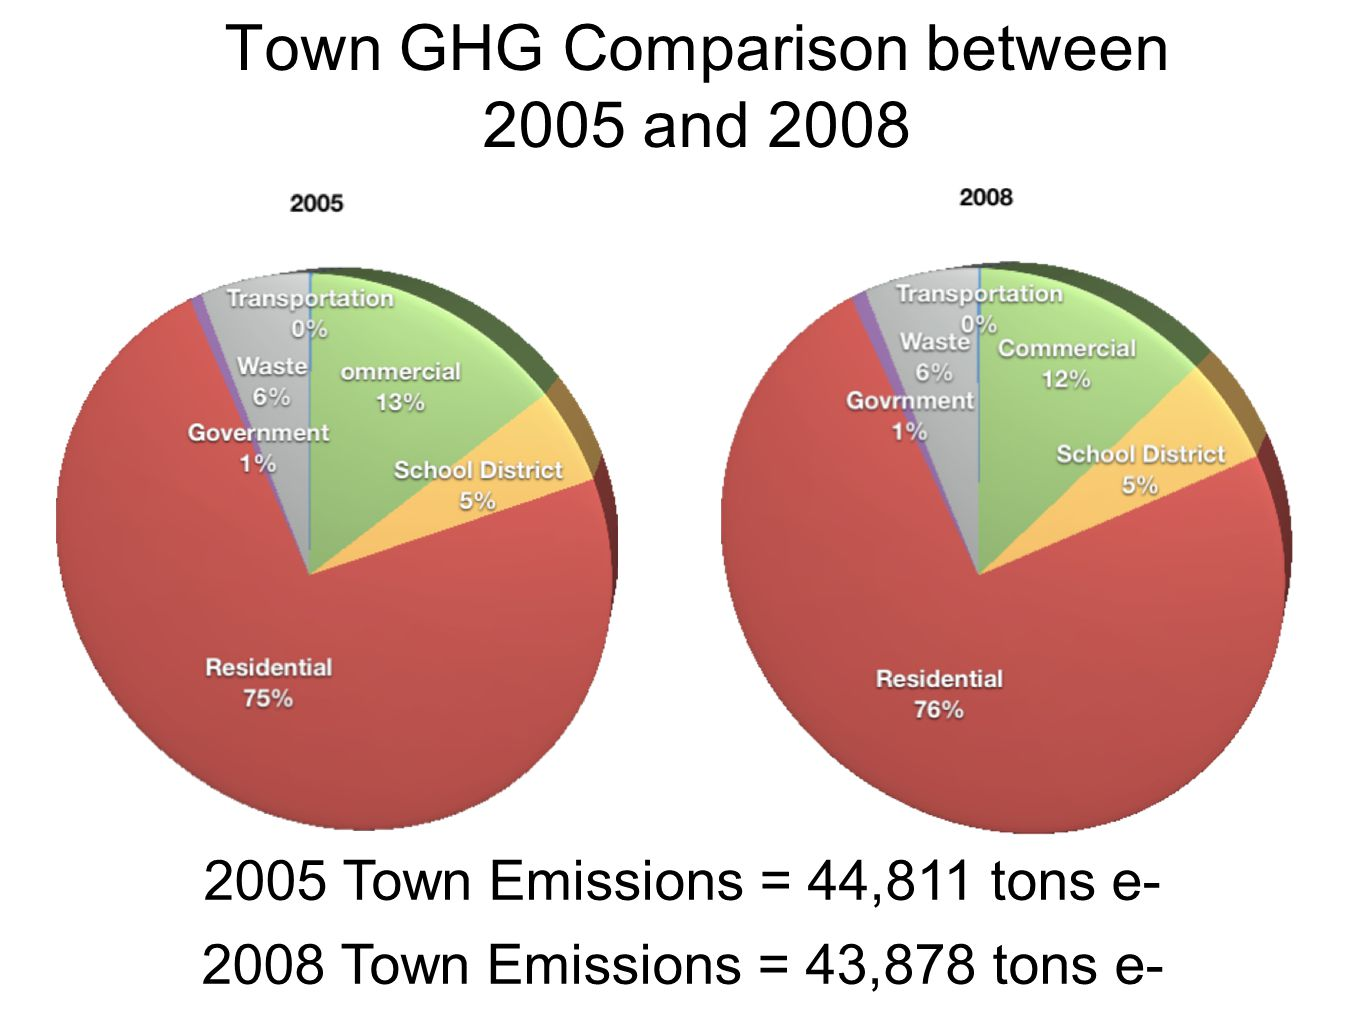 Town GHG Comparison between 2005 and 2008 C 2008 Town Emissions = 43,878 tons e- 2005 Town Emissions = 44,811 tons e-